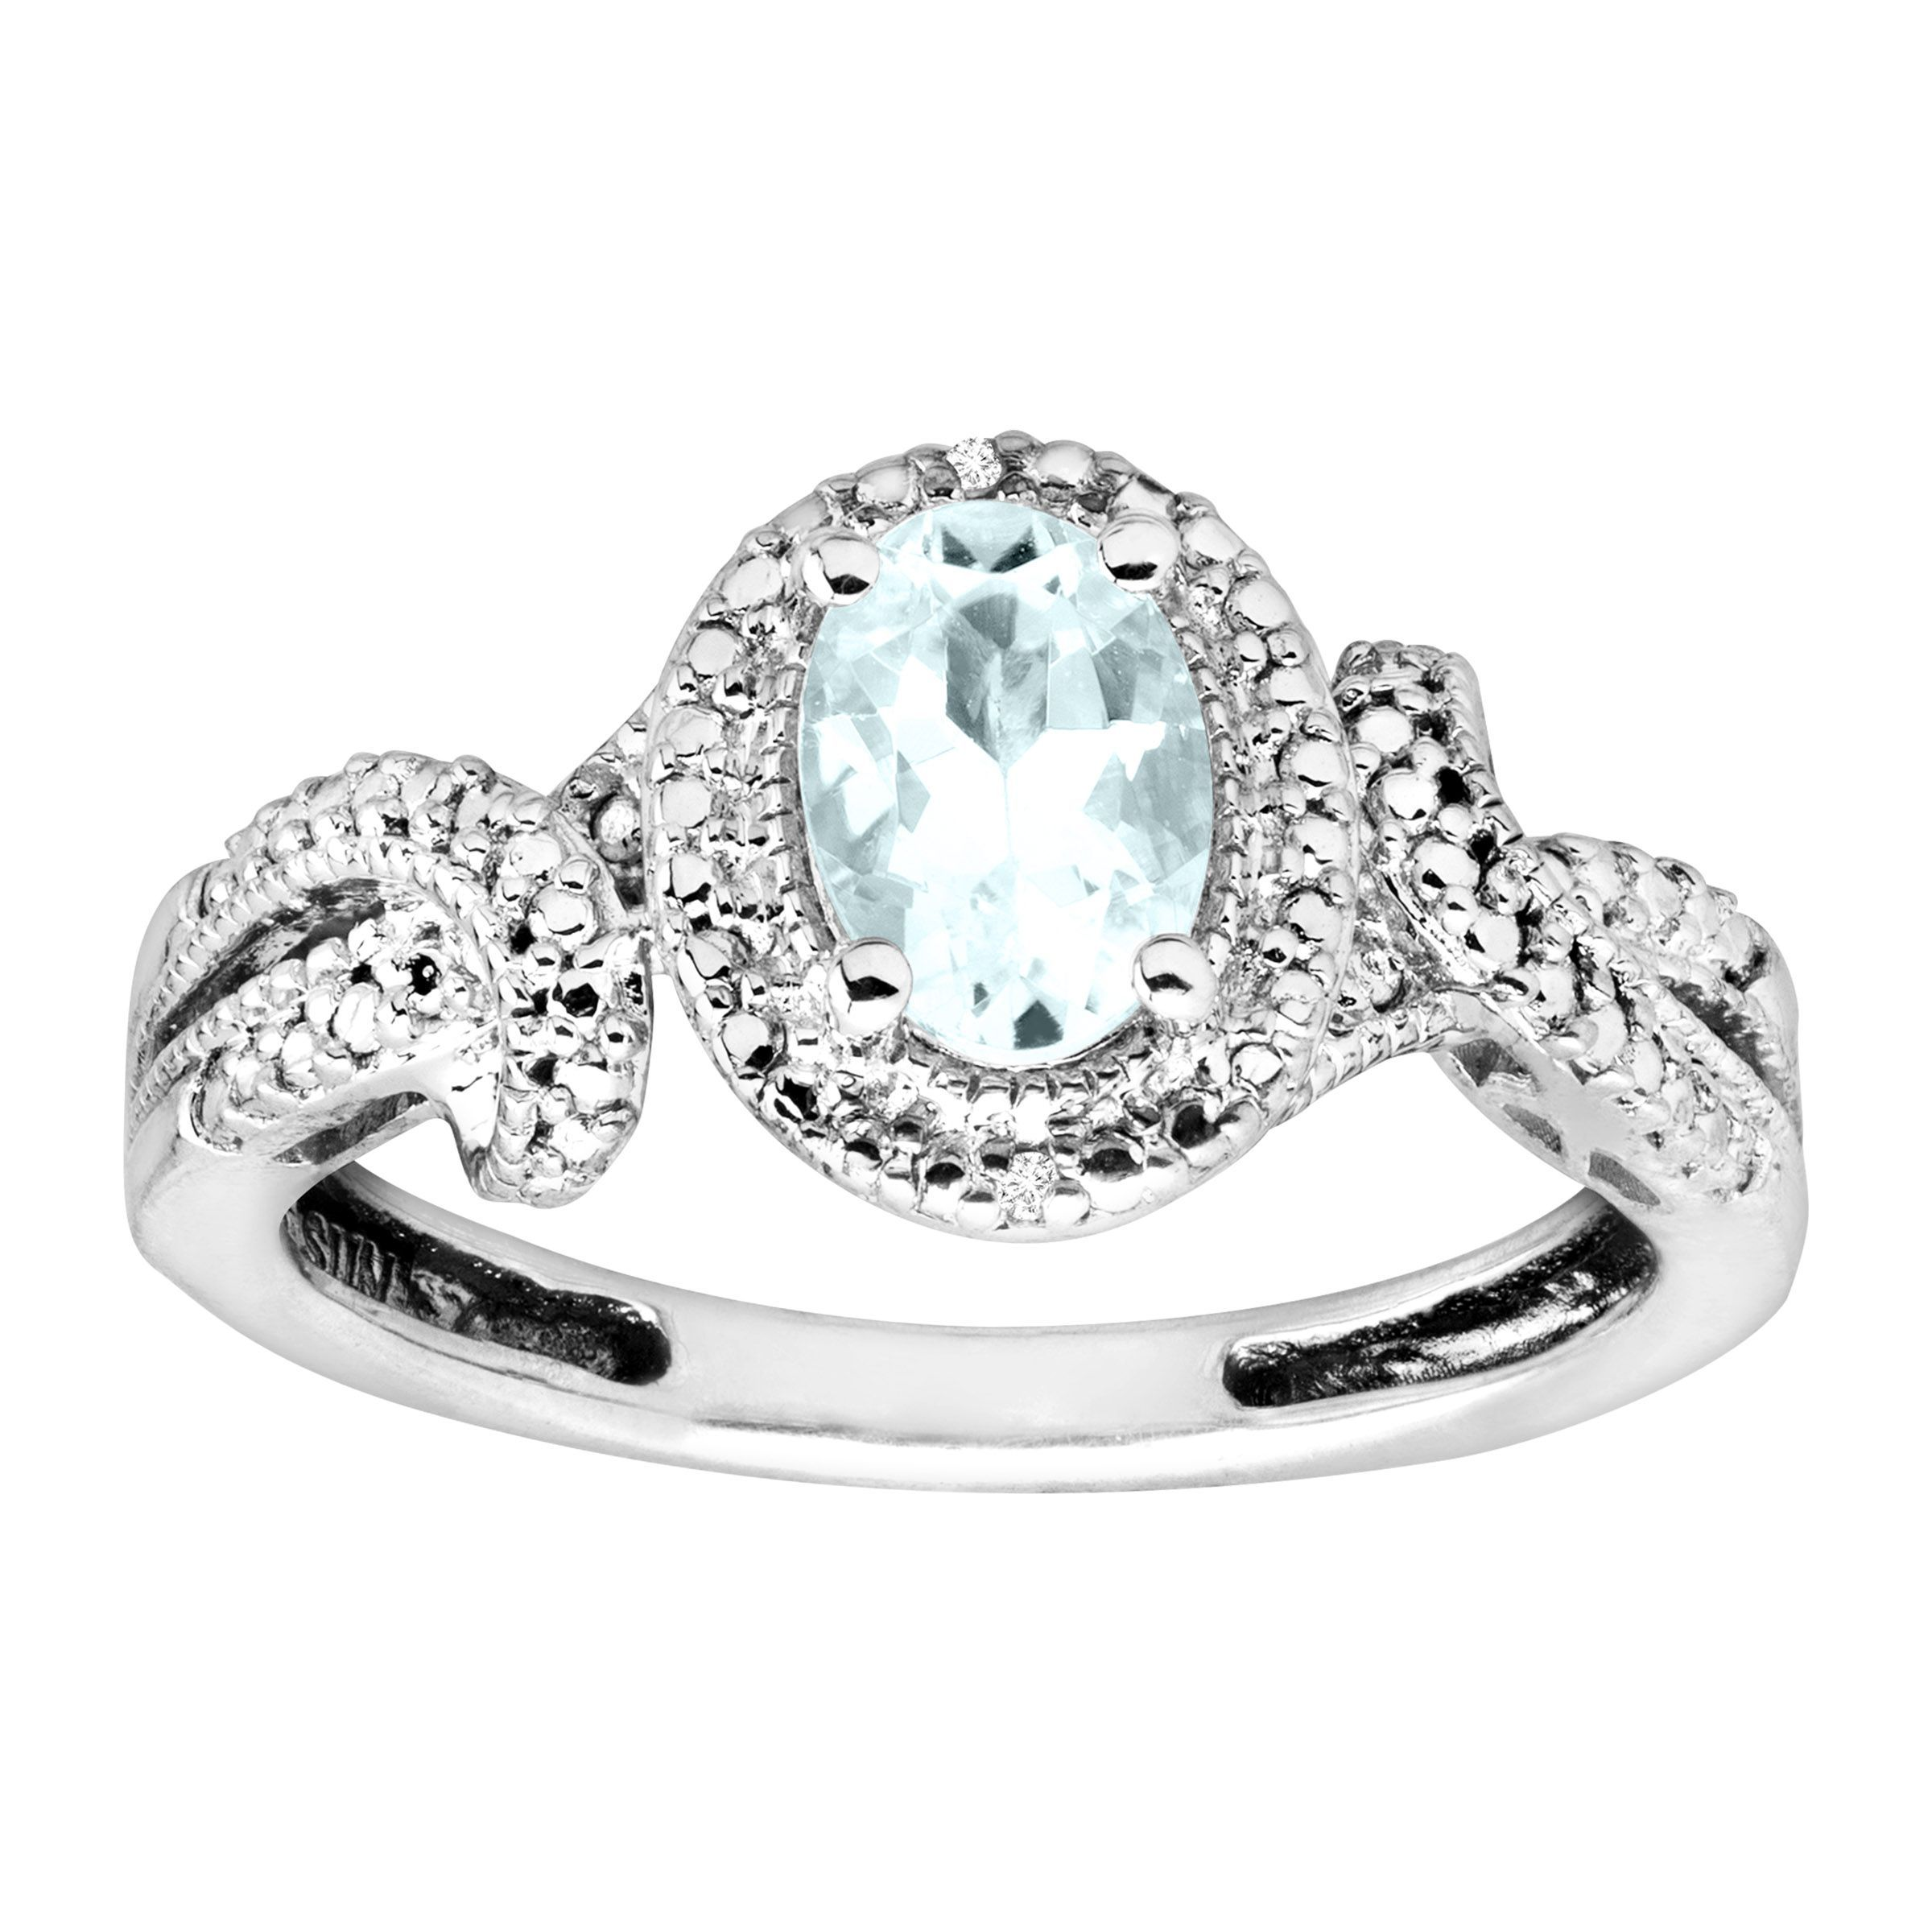 poletti product image aquamarine ring jewellery of pale